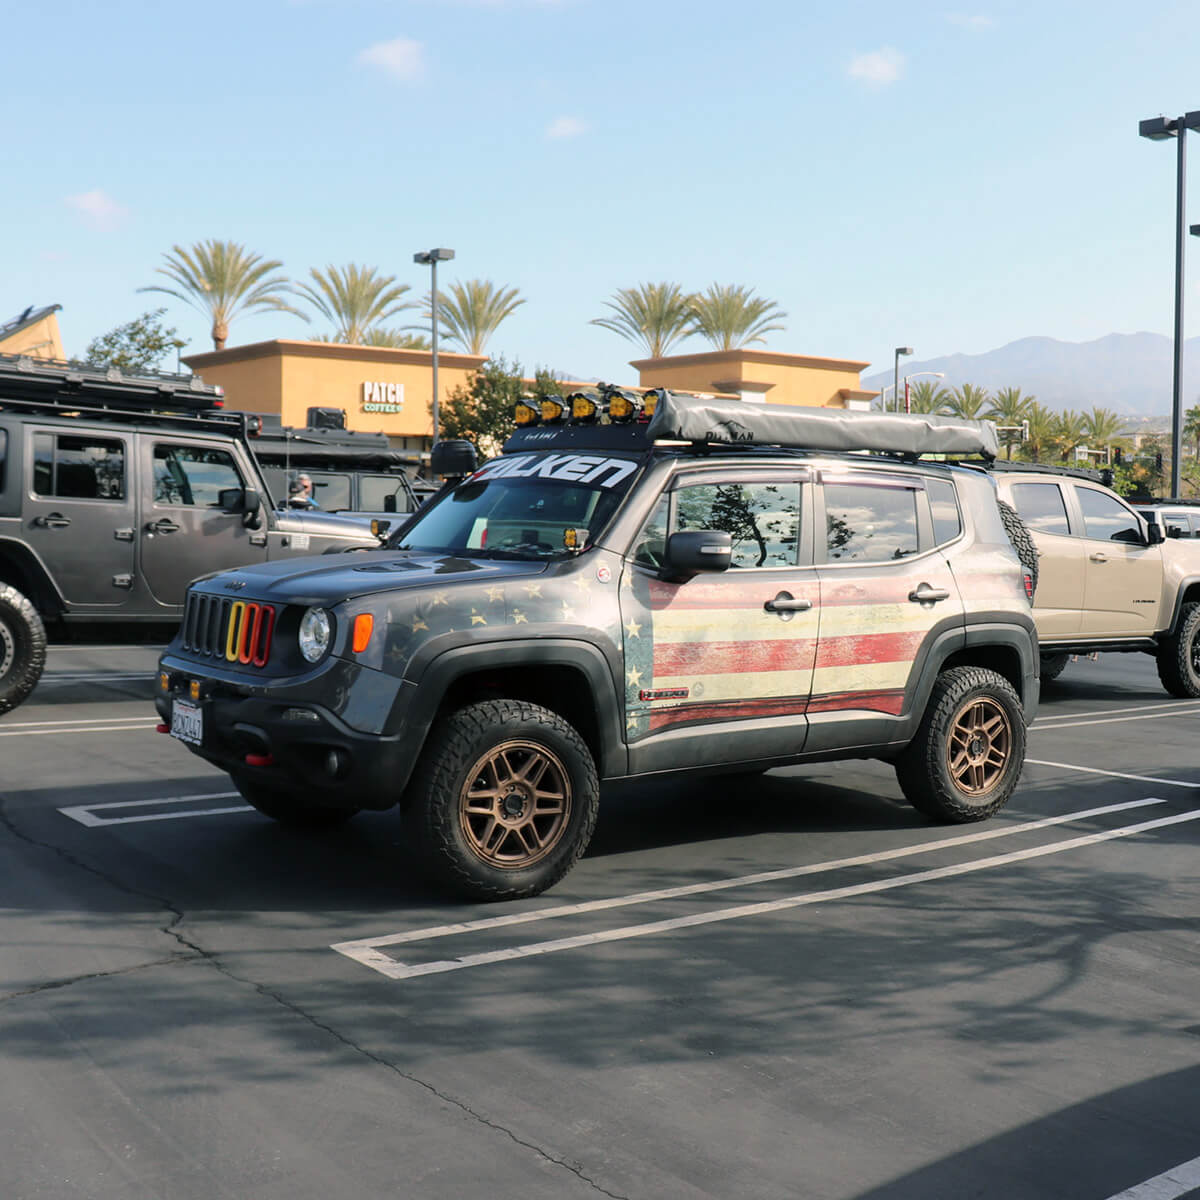 Small Lifted Jeep Renegade For Big Overland & Off-road Adventures